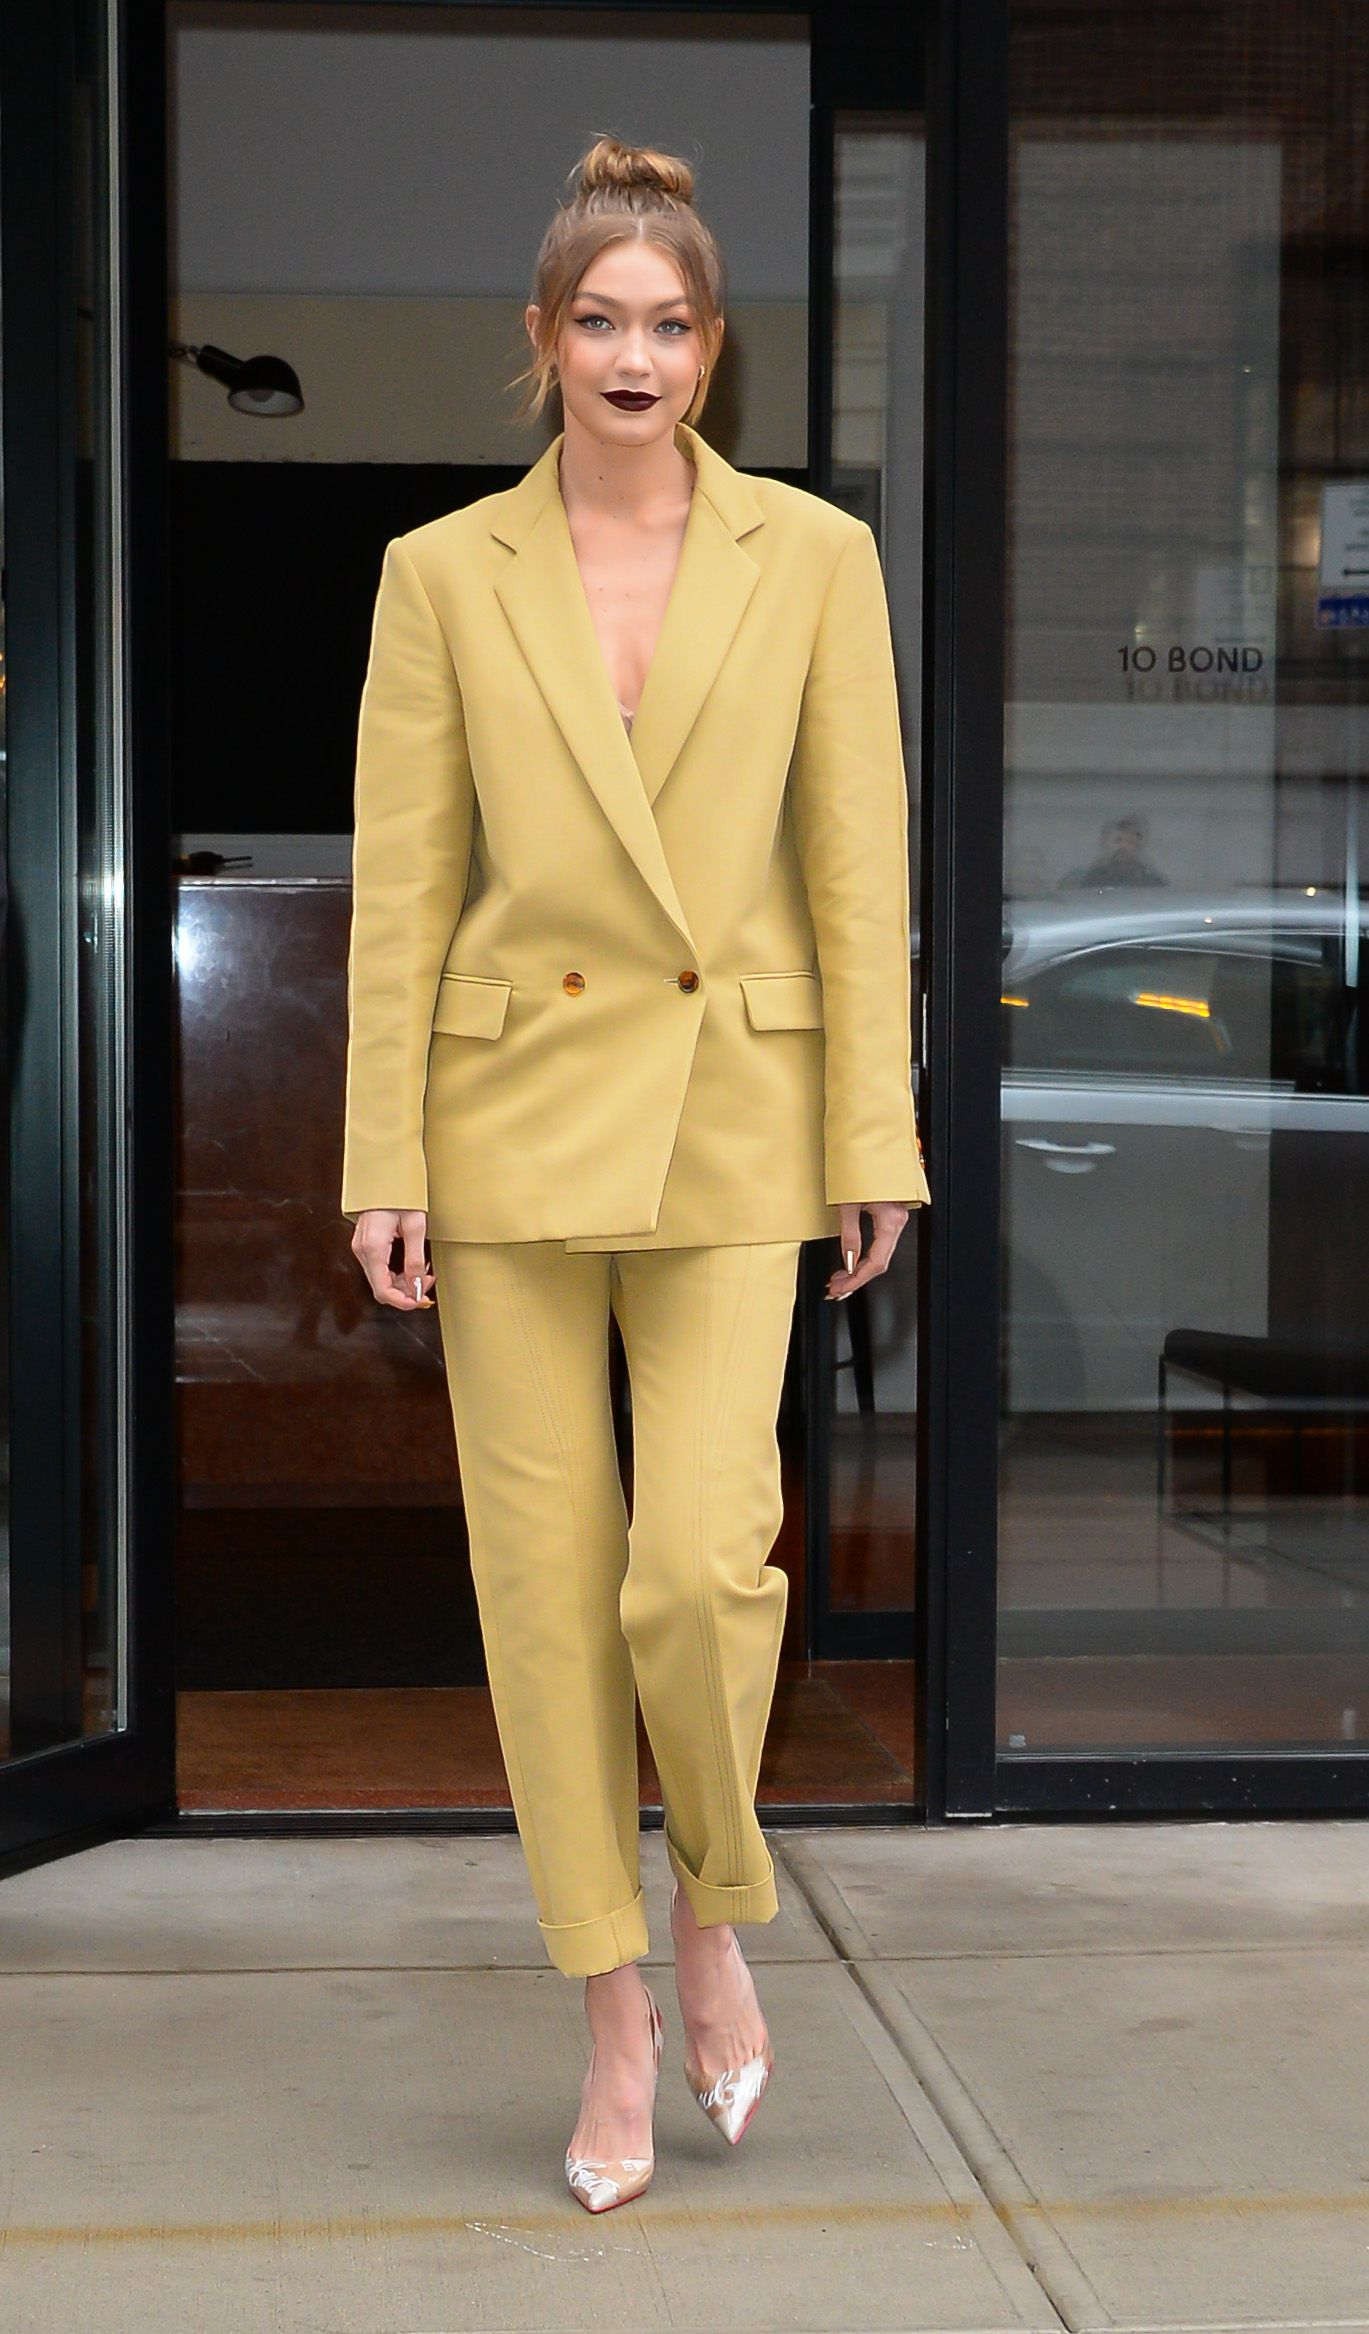 April 25, 2018 The model attended the NYC premiere of Being Serena in a mustard-colored Derek Lam suit. She wore Effy gold pave hoop earrings, Christian Louboutin pumps, and added a dark-colored lip for moody vibes.